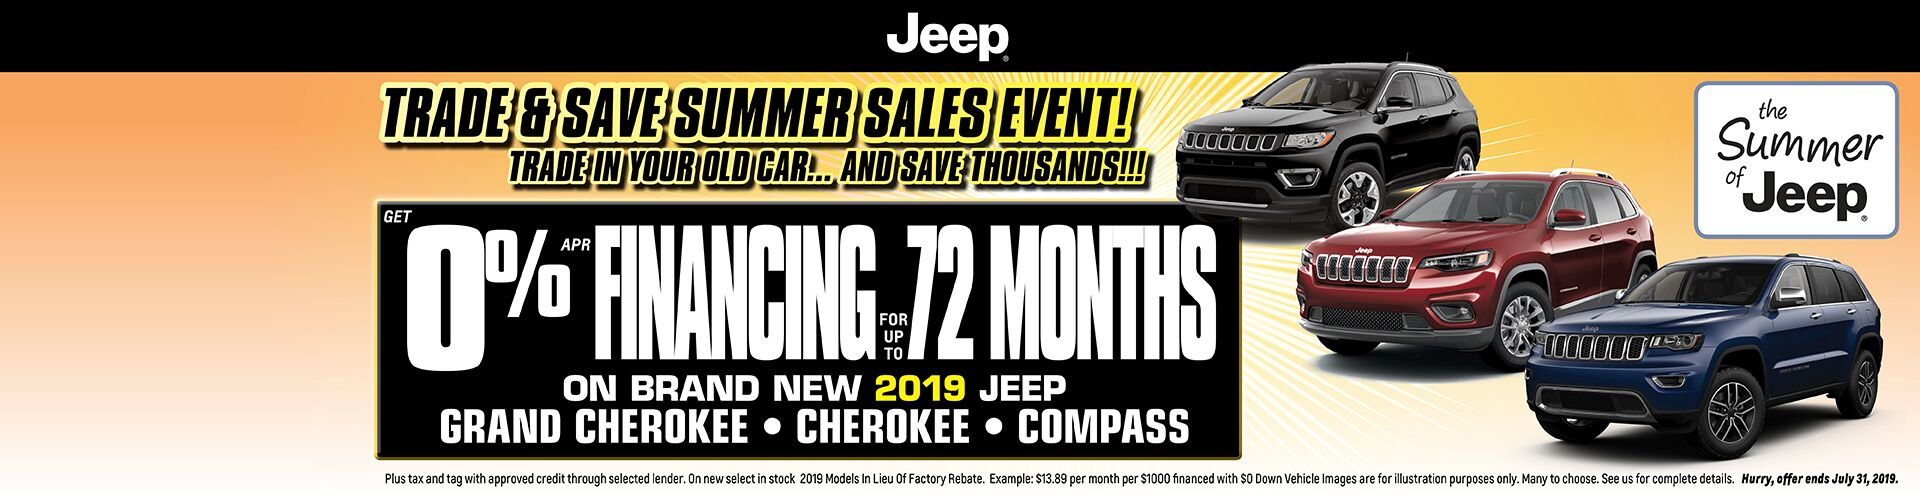 Just Announced - 0% Financing Available on Jeep Compass, Cherokees & Grand Cherokees!